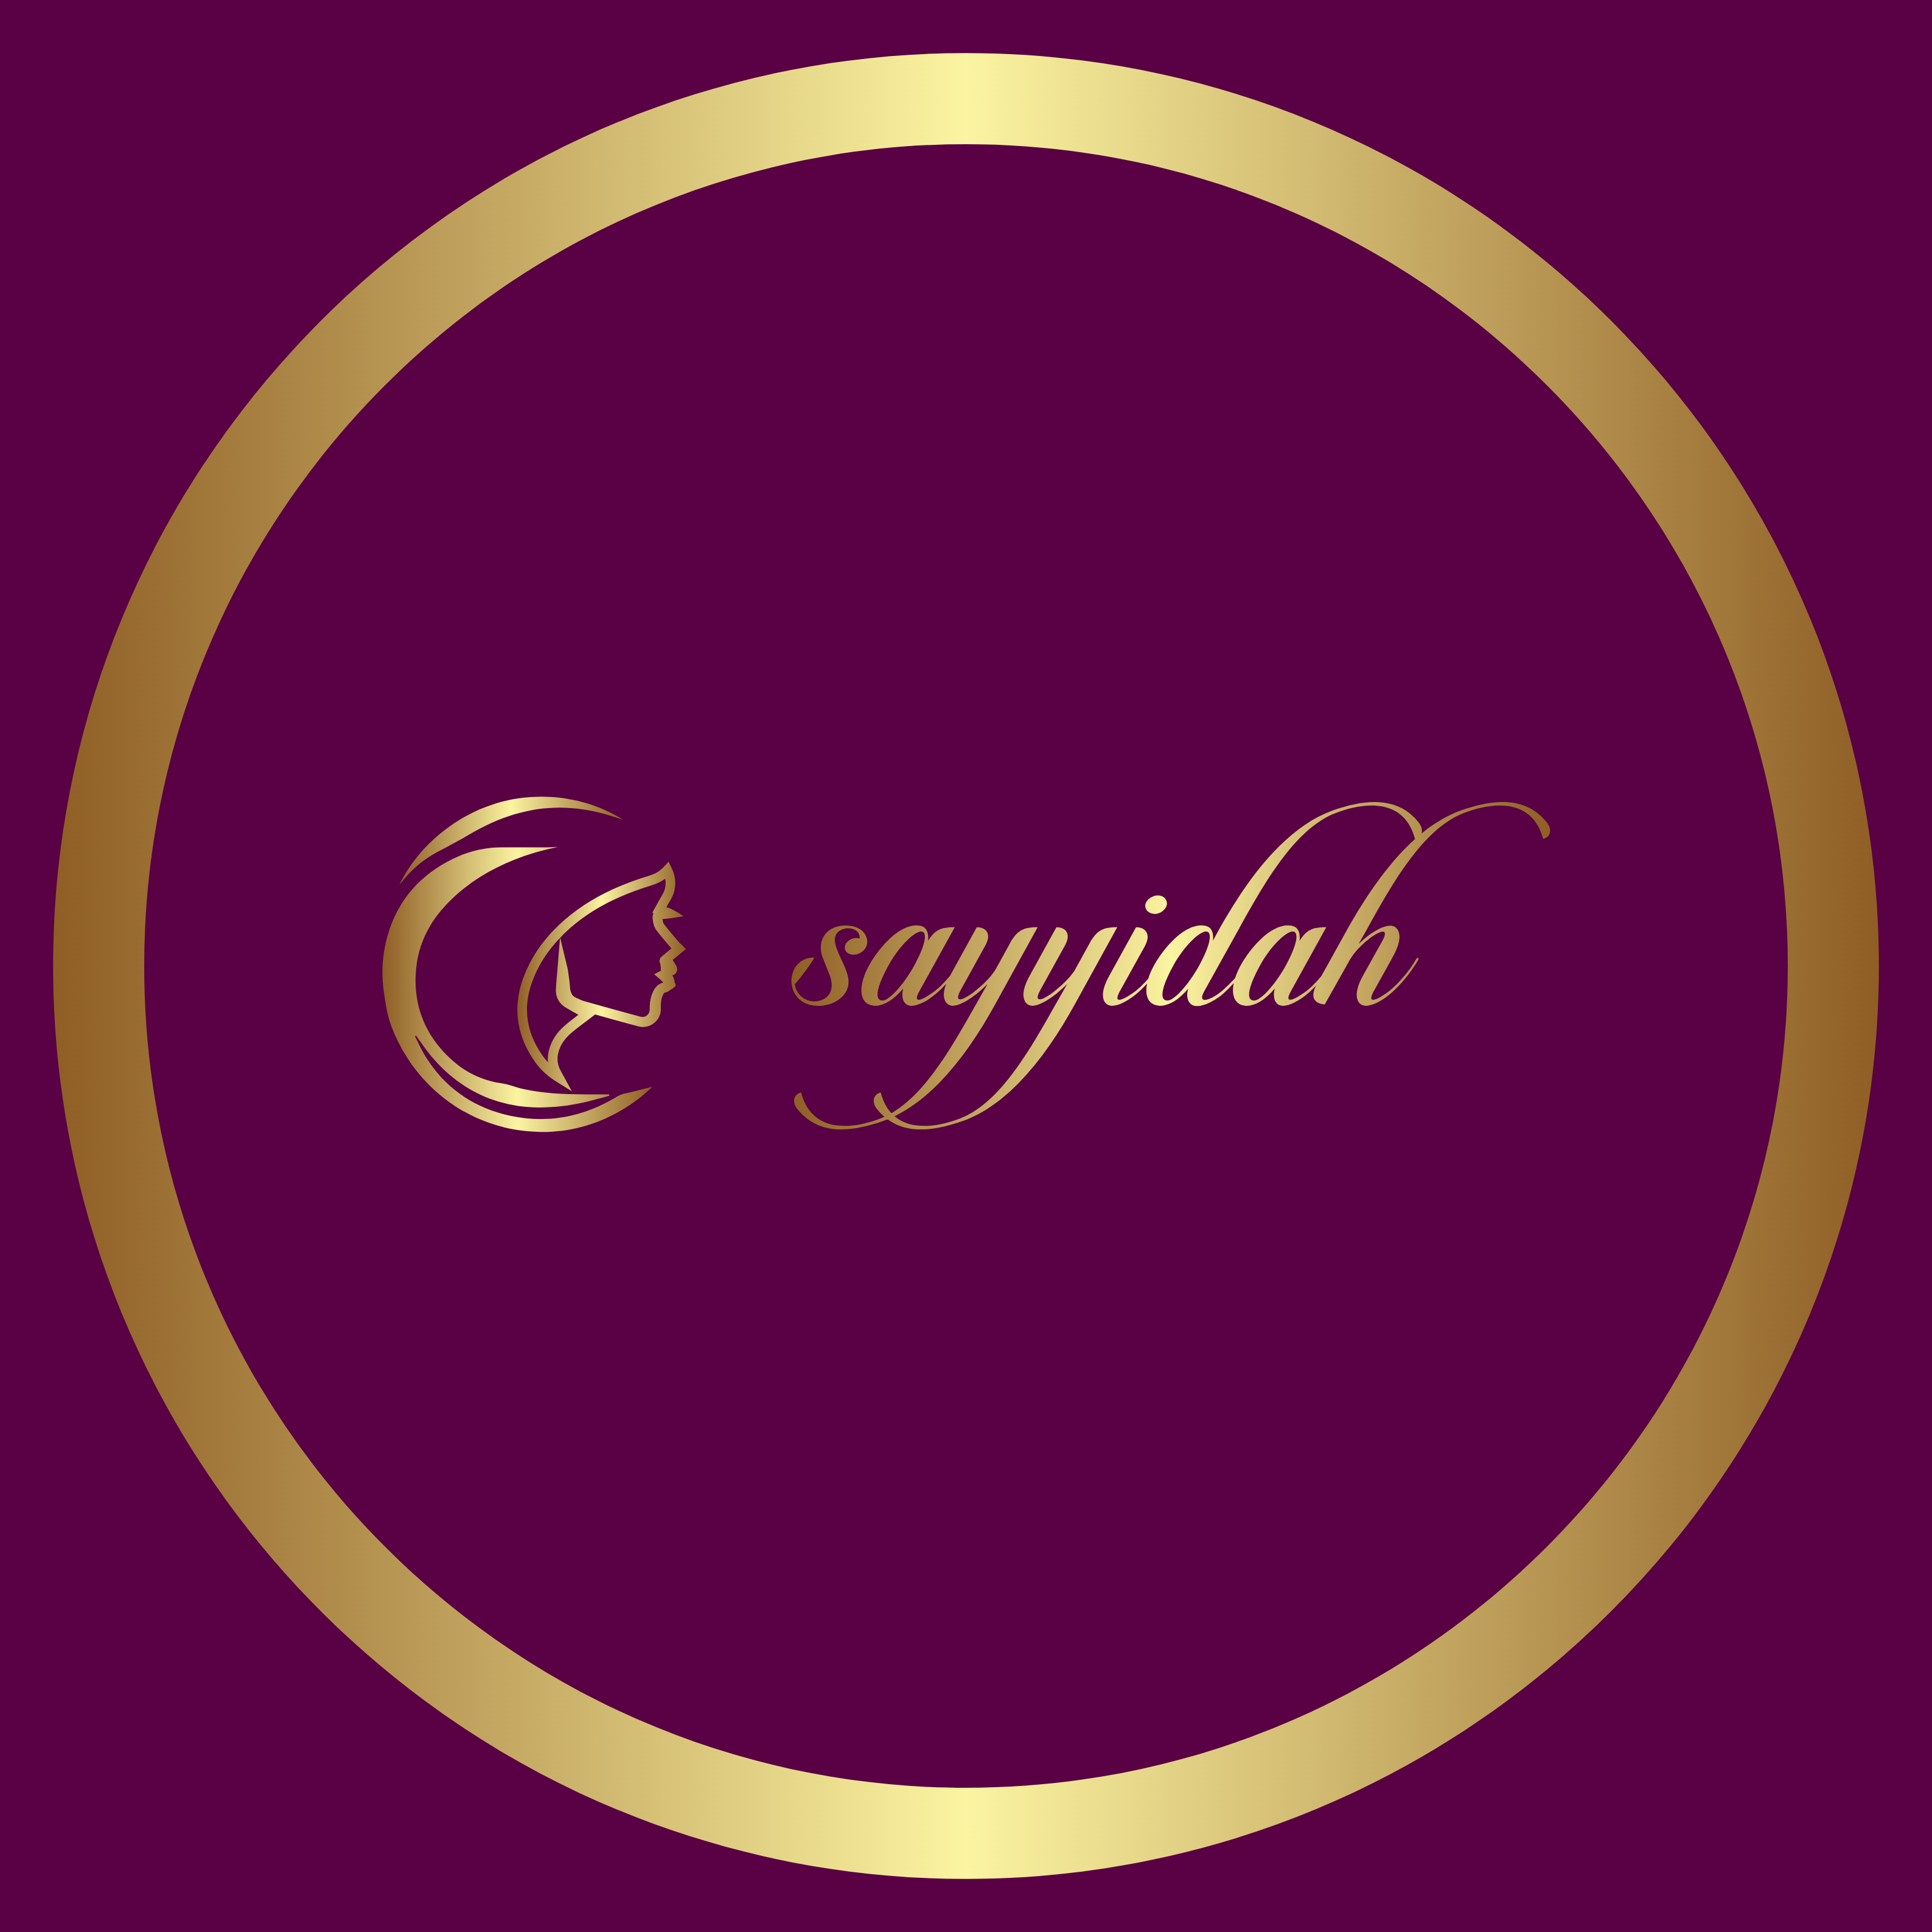 Sayyidah couture